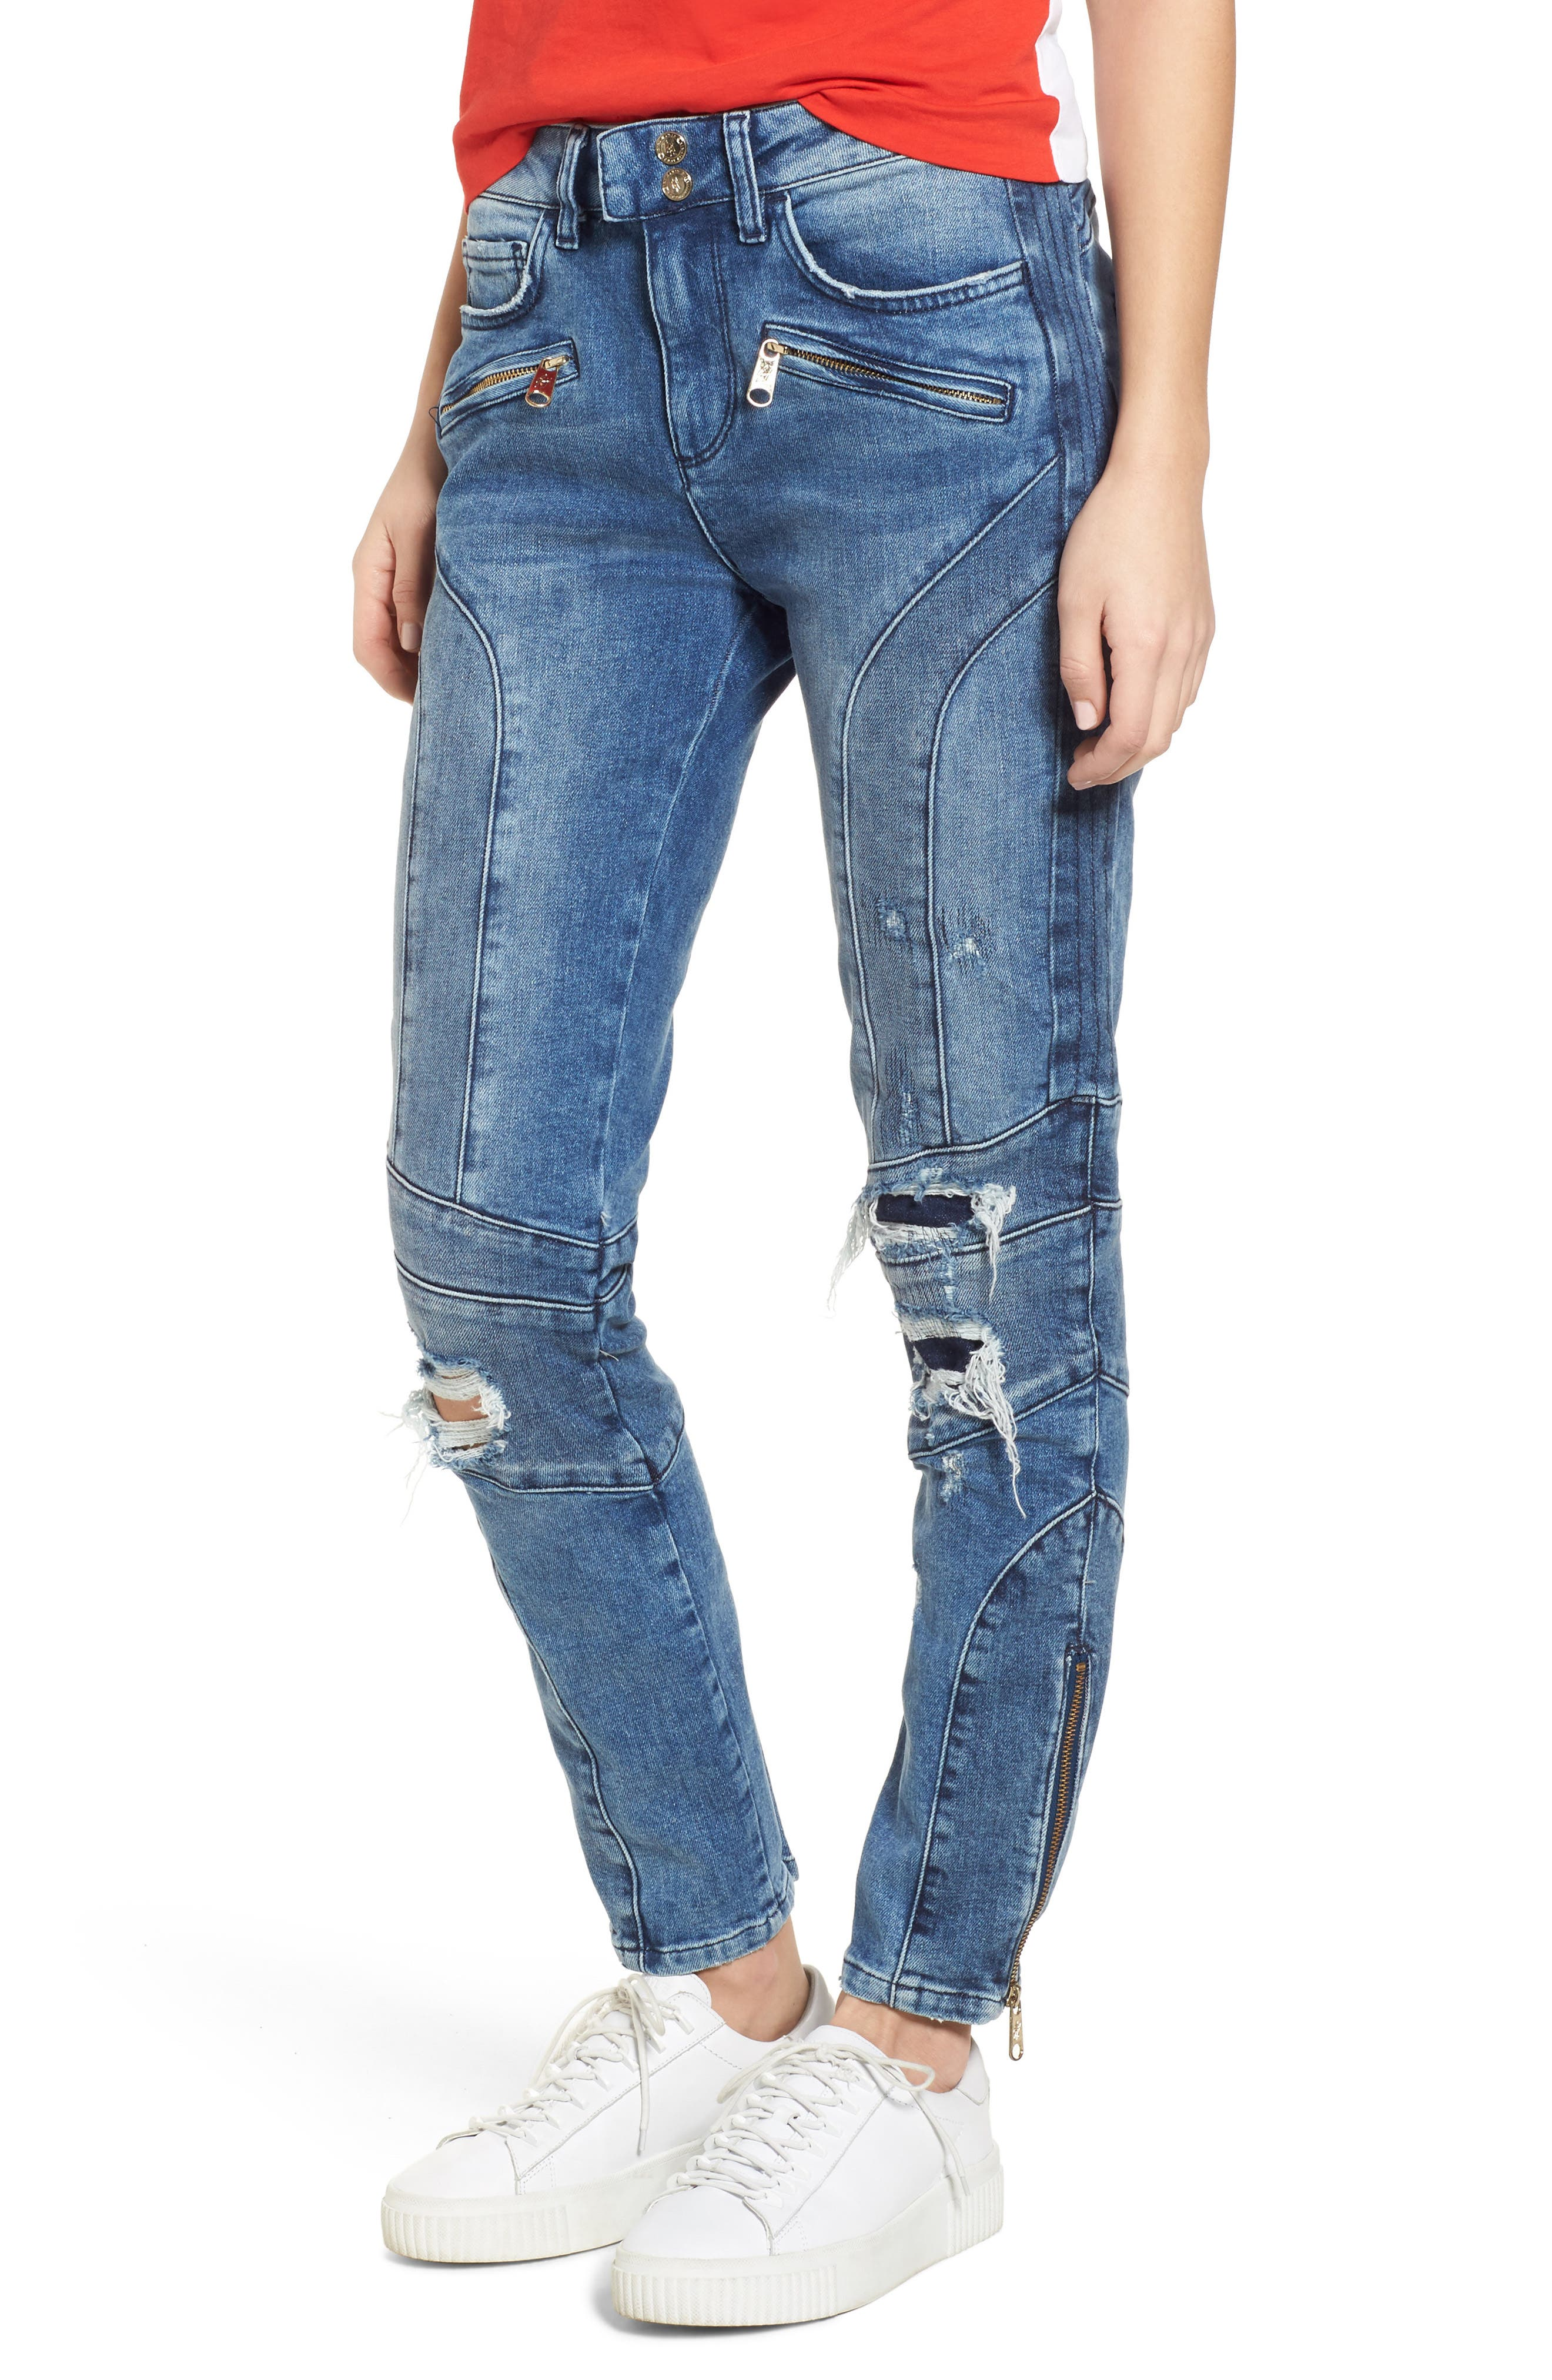 x Gigi Hadid Speed Distressed Ankle Zip Jeans,                         Main,                         color, Mid Blue